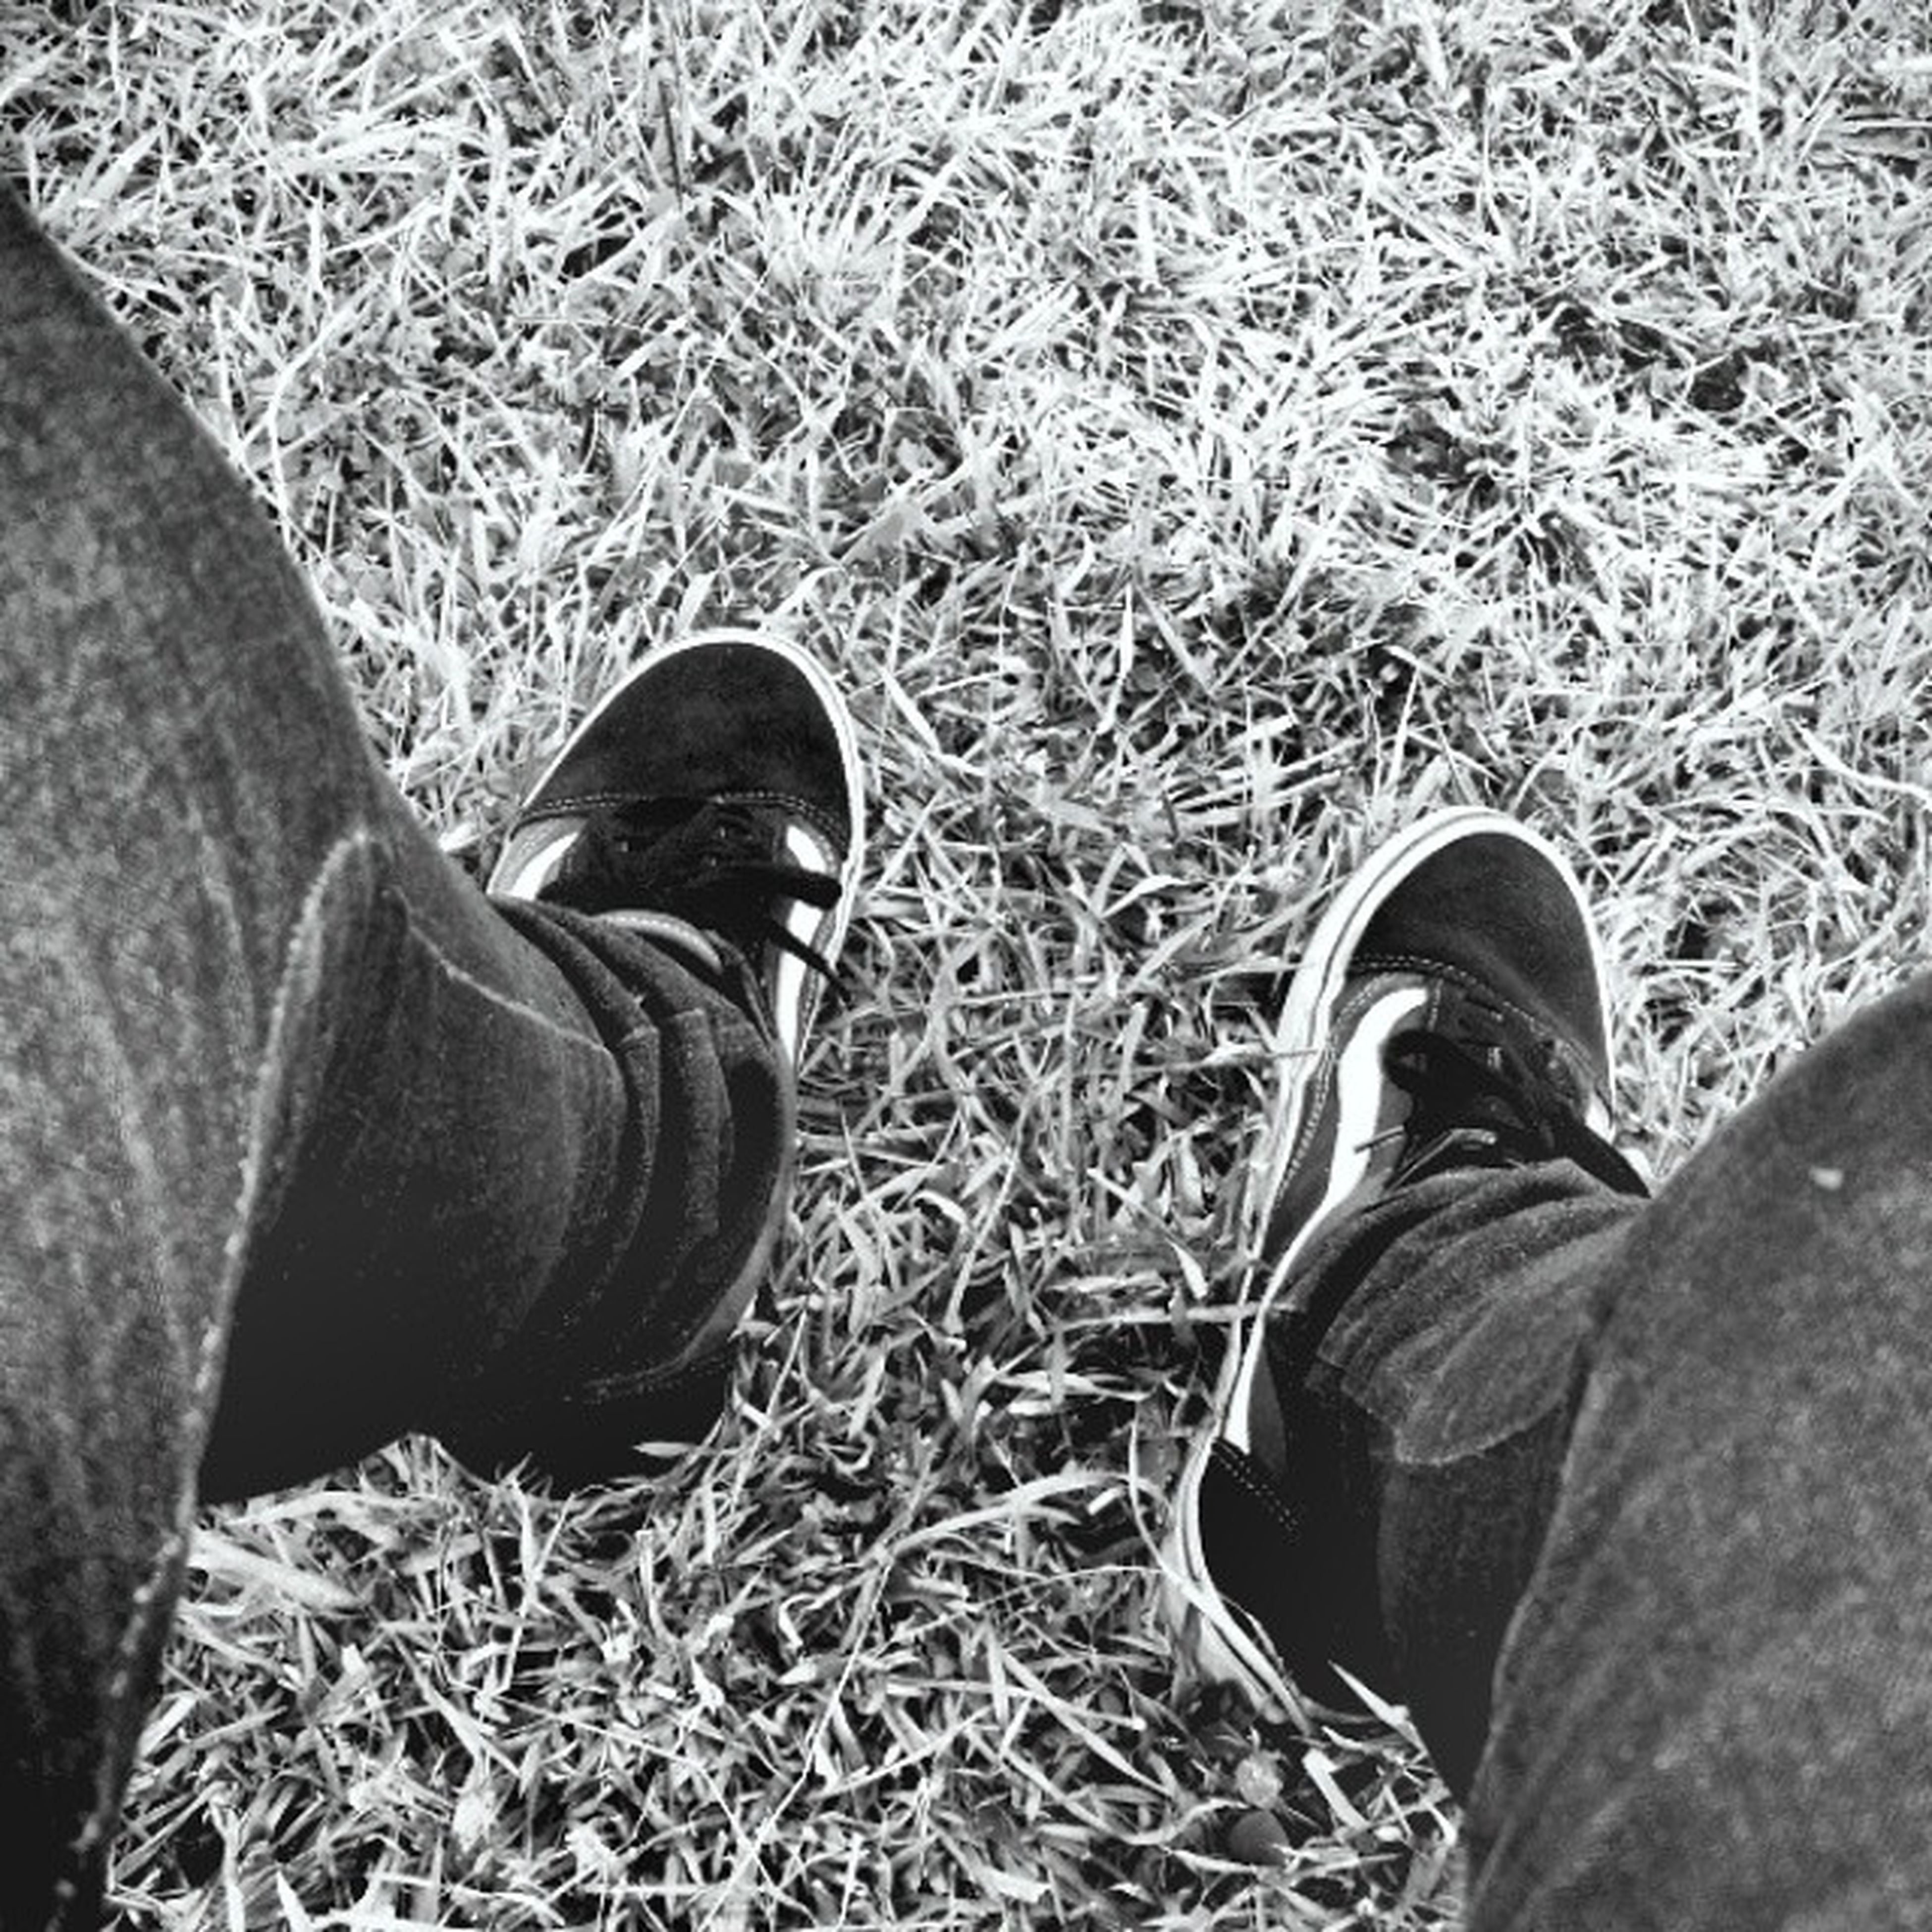 shoe, low section, person, footwear, personal perspective, jeans, grass, high angle view, human foot, lifestyles, standing, field, men, canvas shoe, pair, grassy, leisure activity